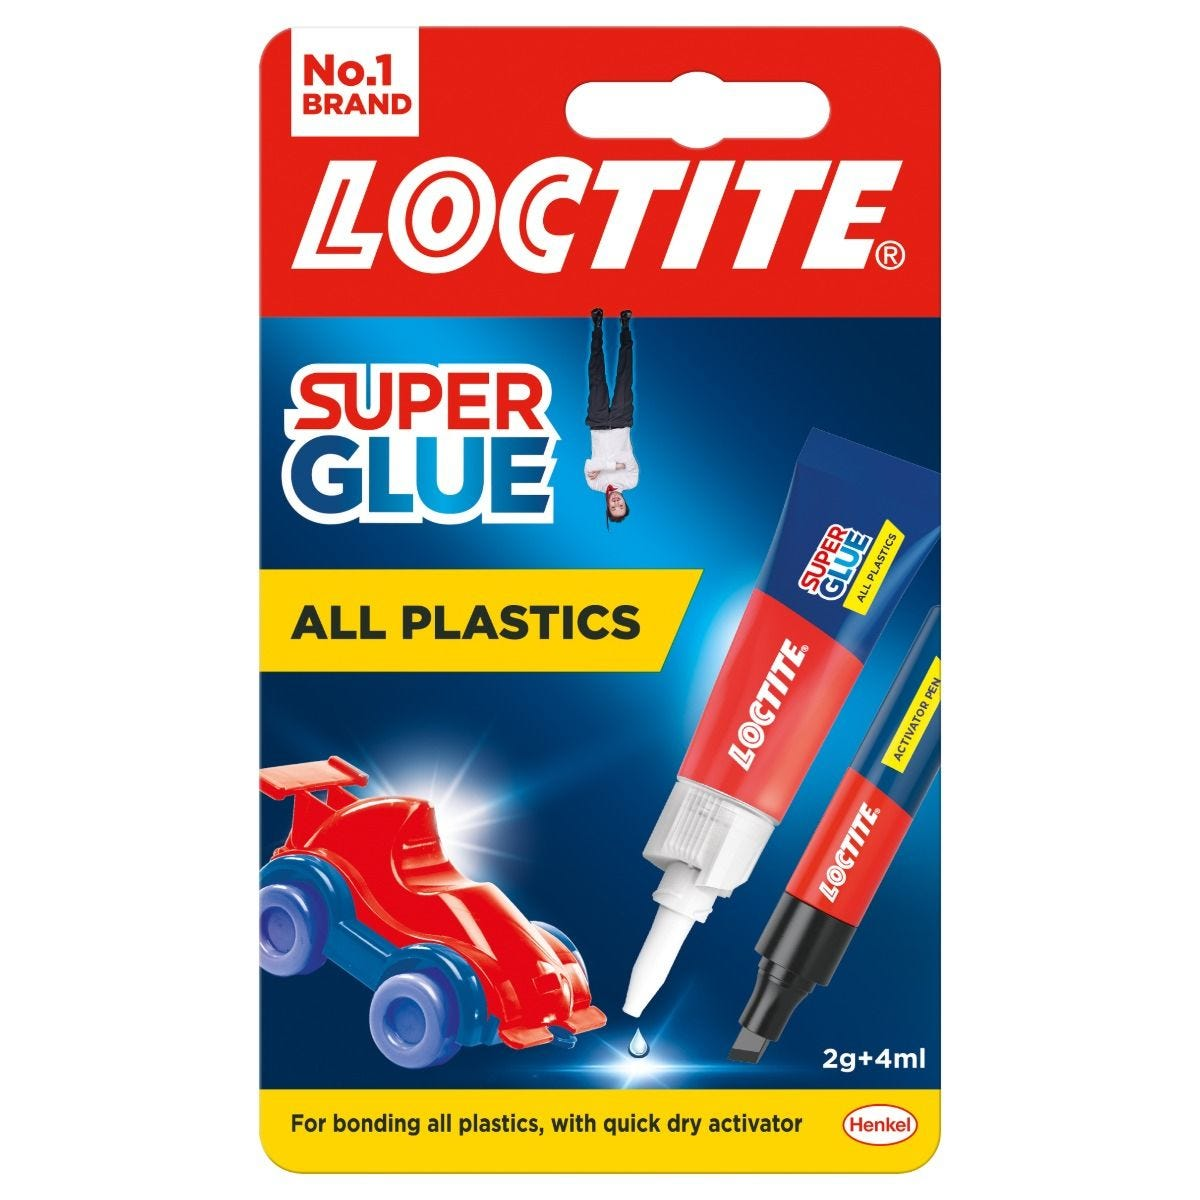 Loctite Super Glue All Plastics 2g & 4ml